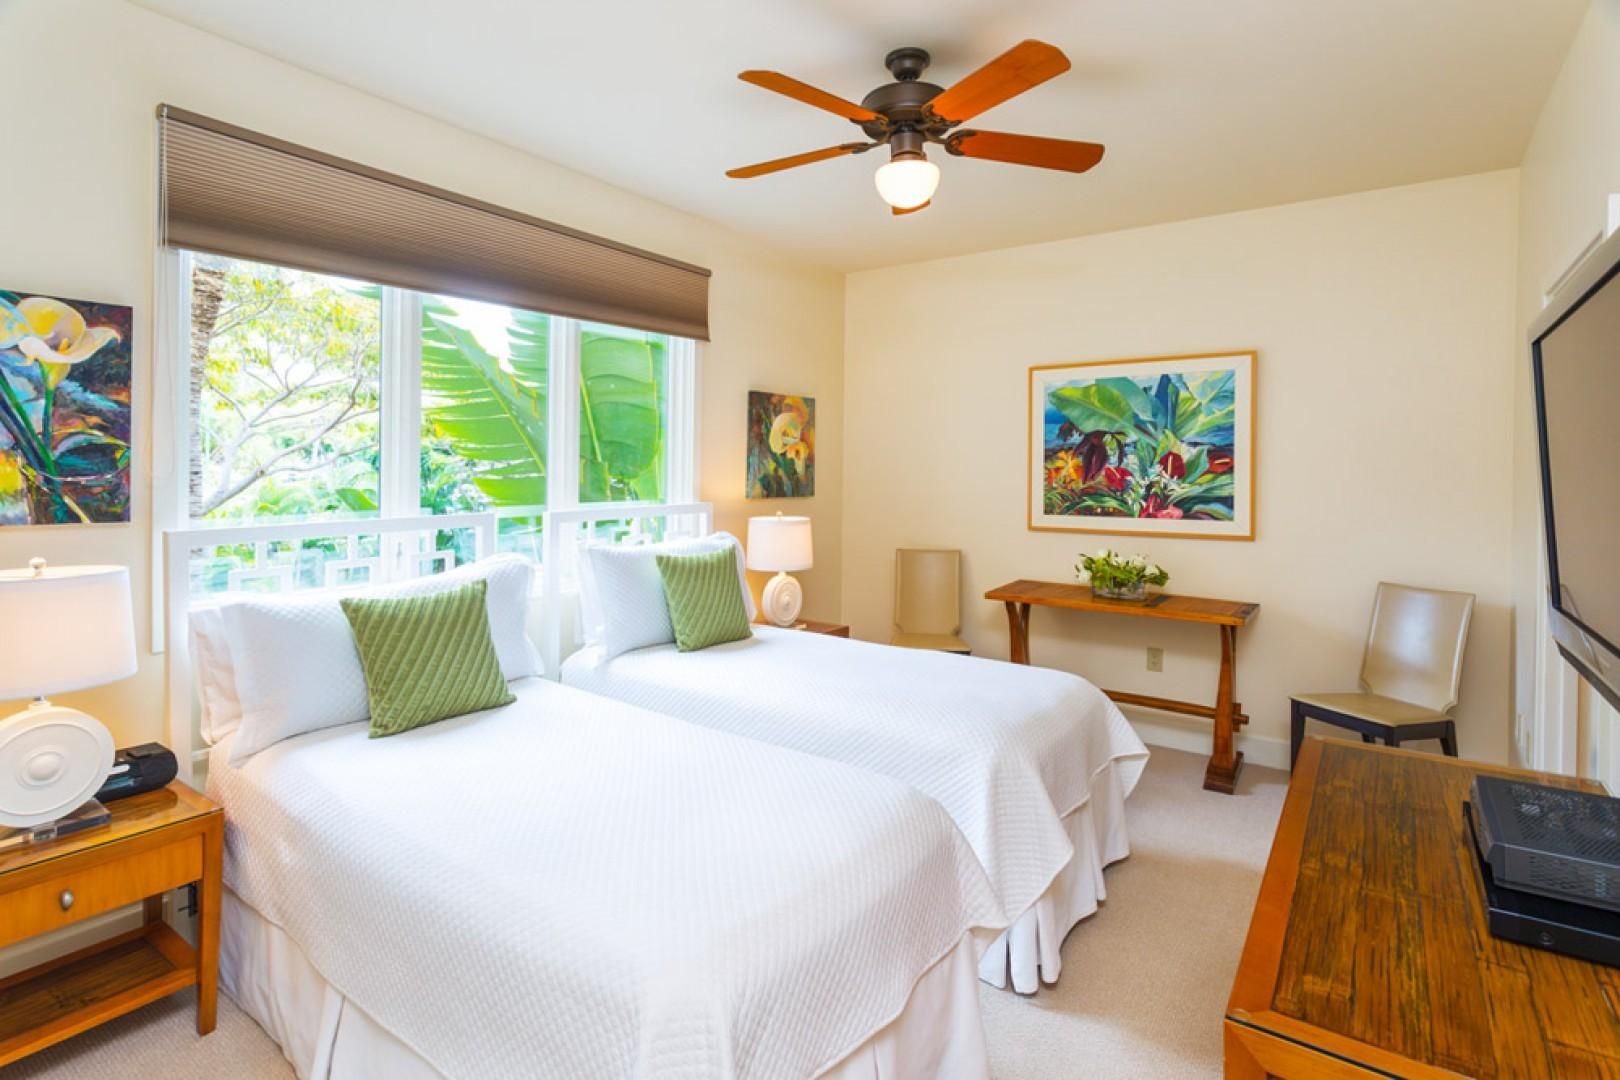 Third bedroom suite, with the flexibility of another king bed or two twin beds.